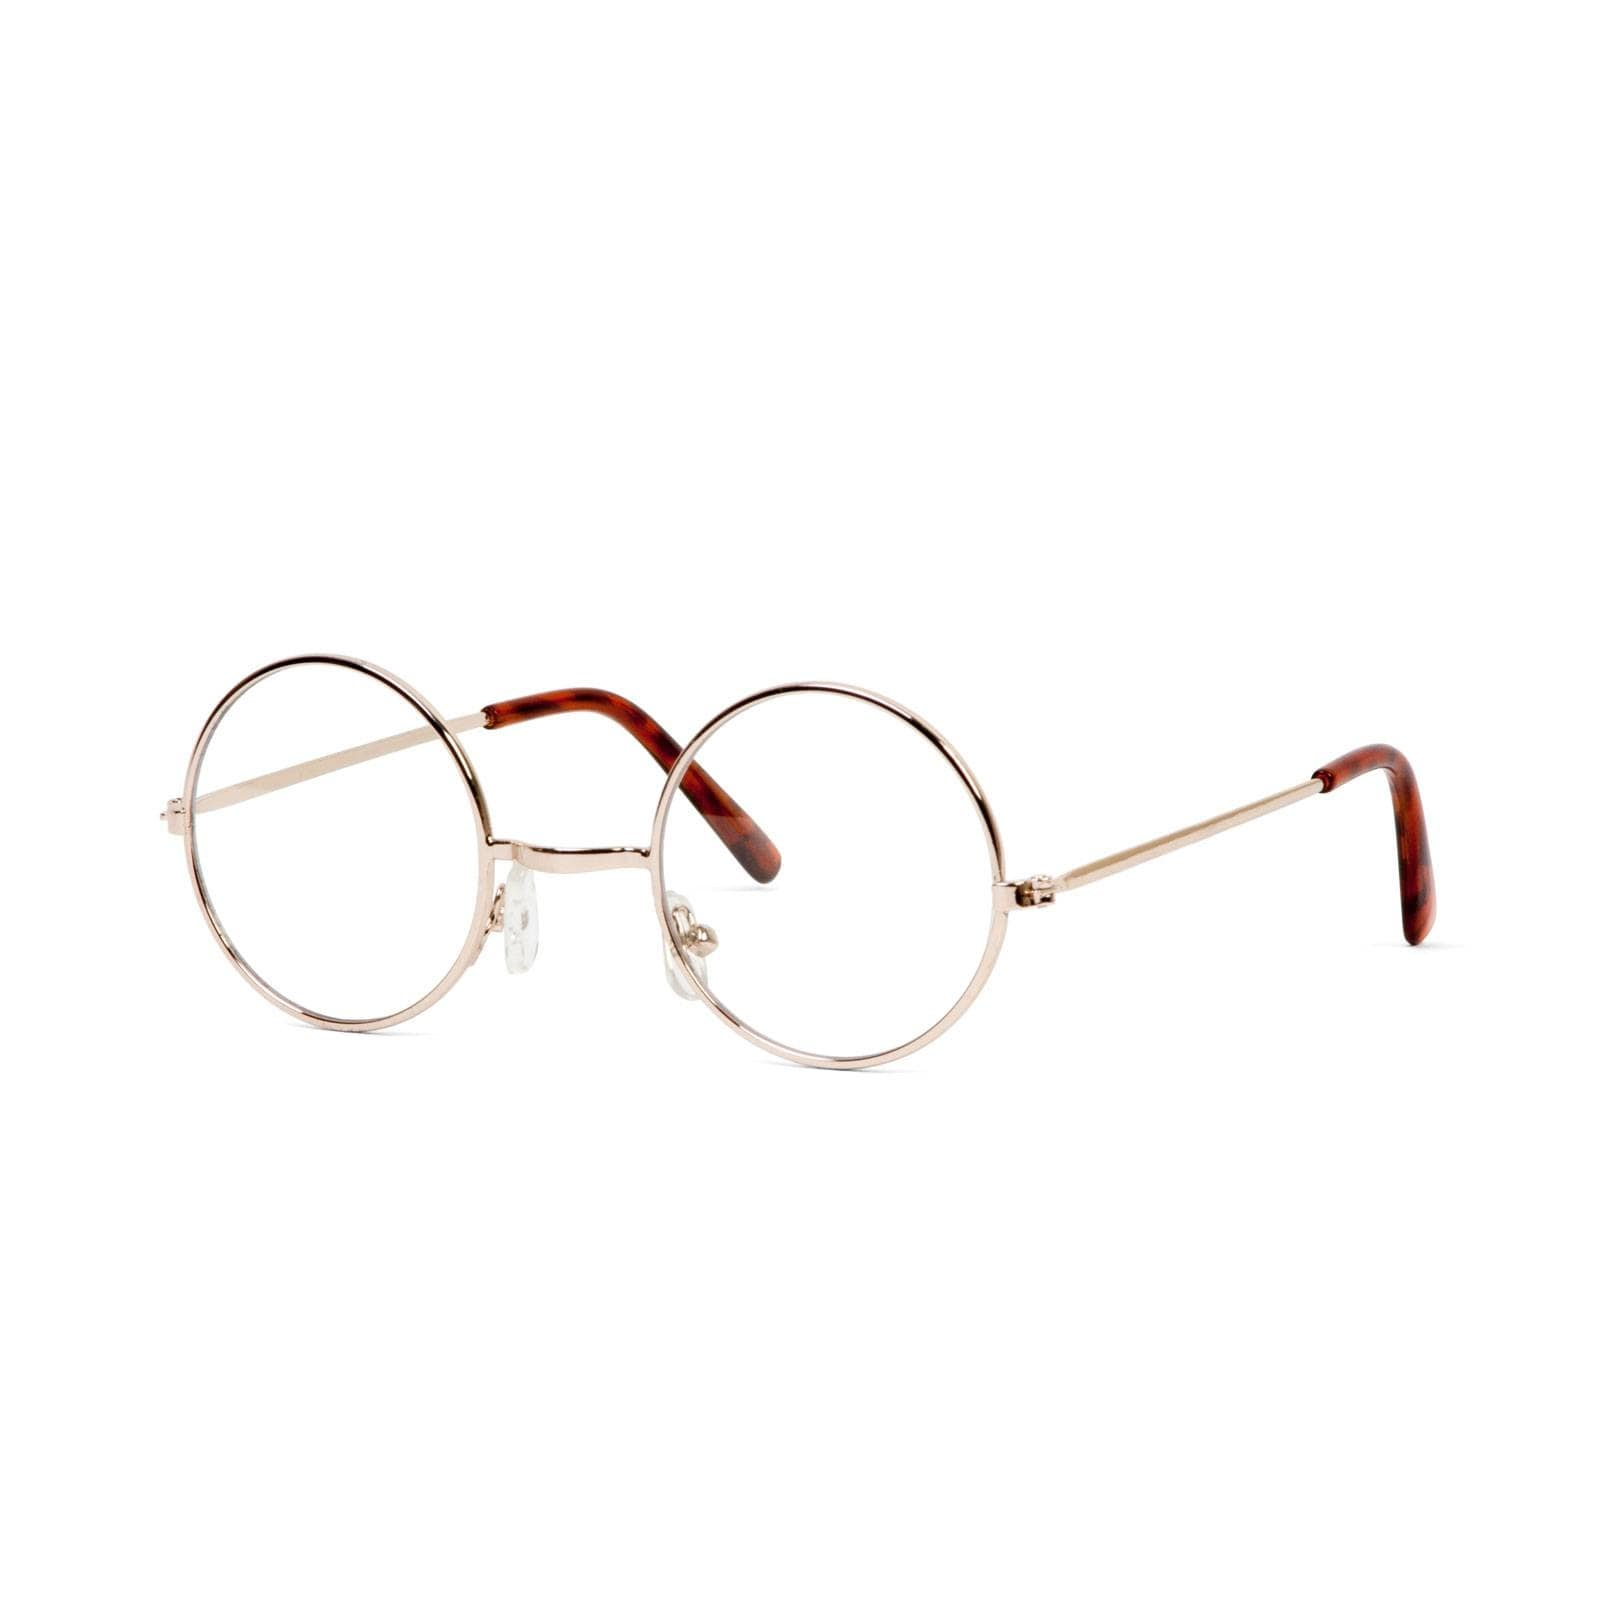 d2baa6ab37c Shop Circular Gold Frame Clear Lens Glasses with Free Microfiber Case - One  size - Free Shipping On Orders Over  45 - Overstock.com - 16947848